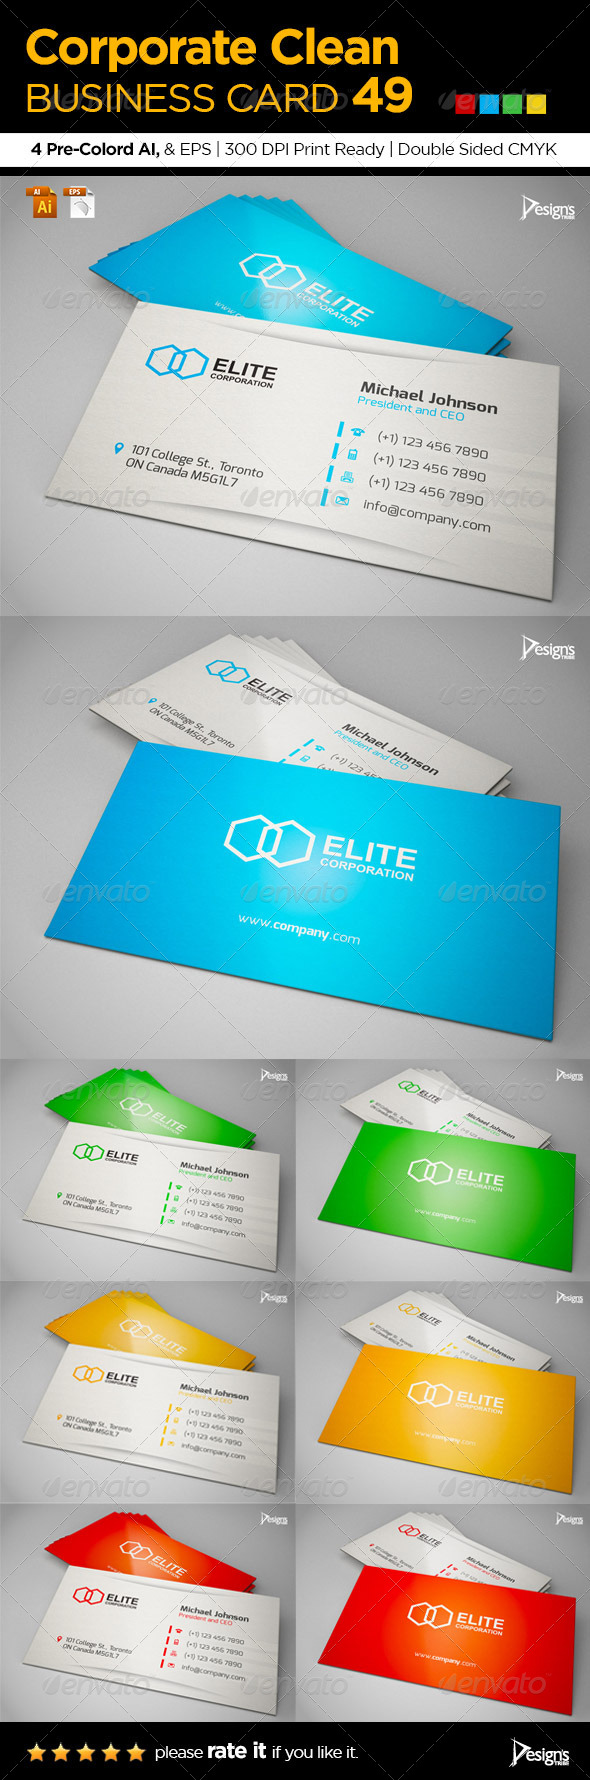 Corporate Clean Business Card 49 - Business Cards Print Templates